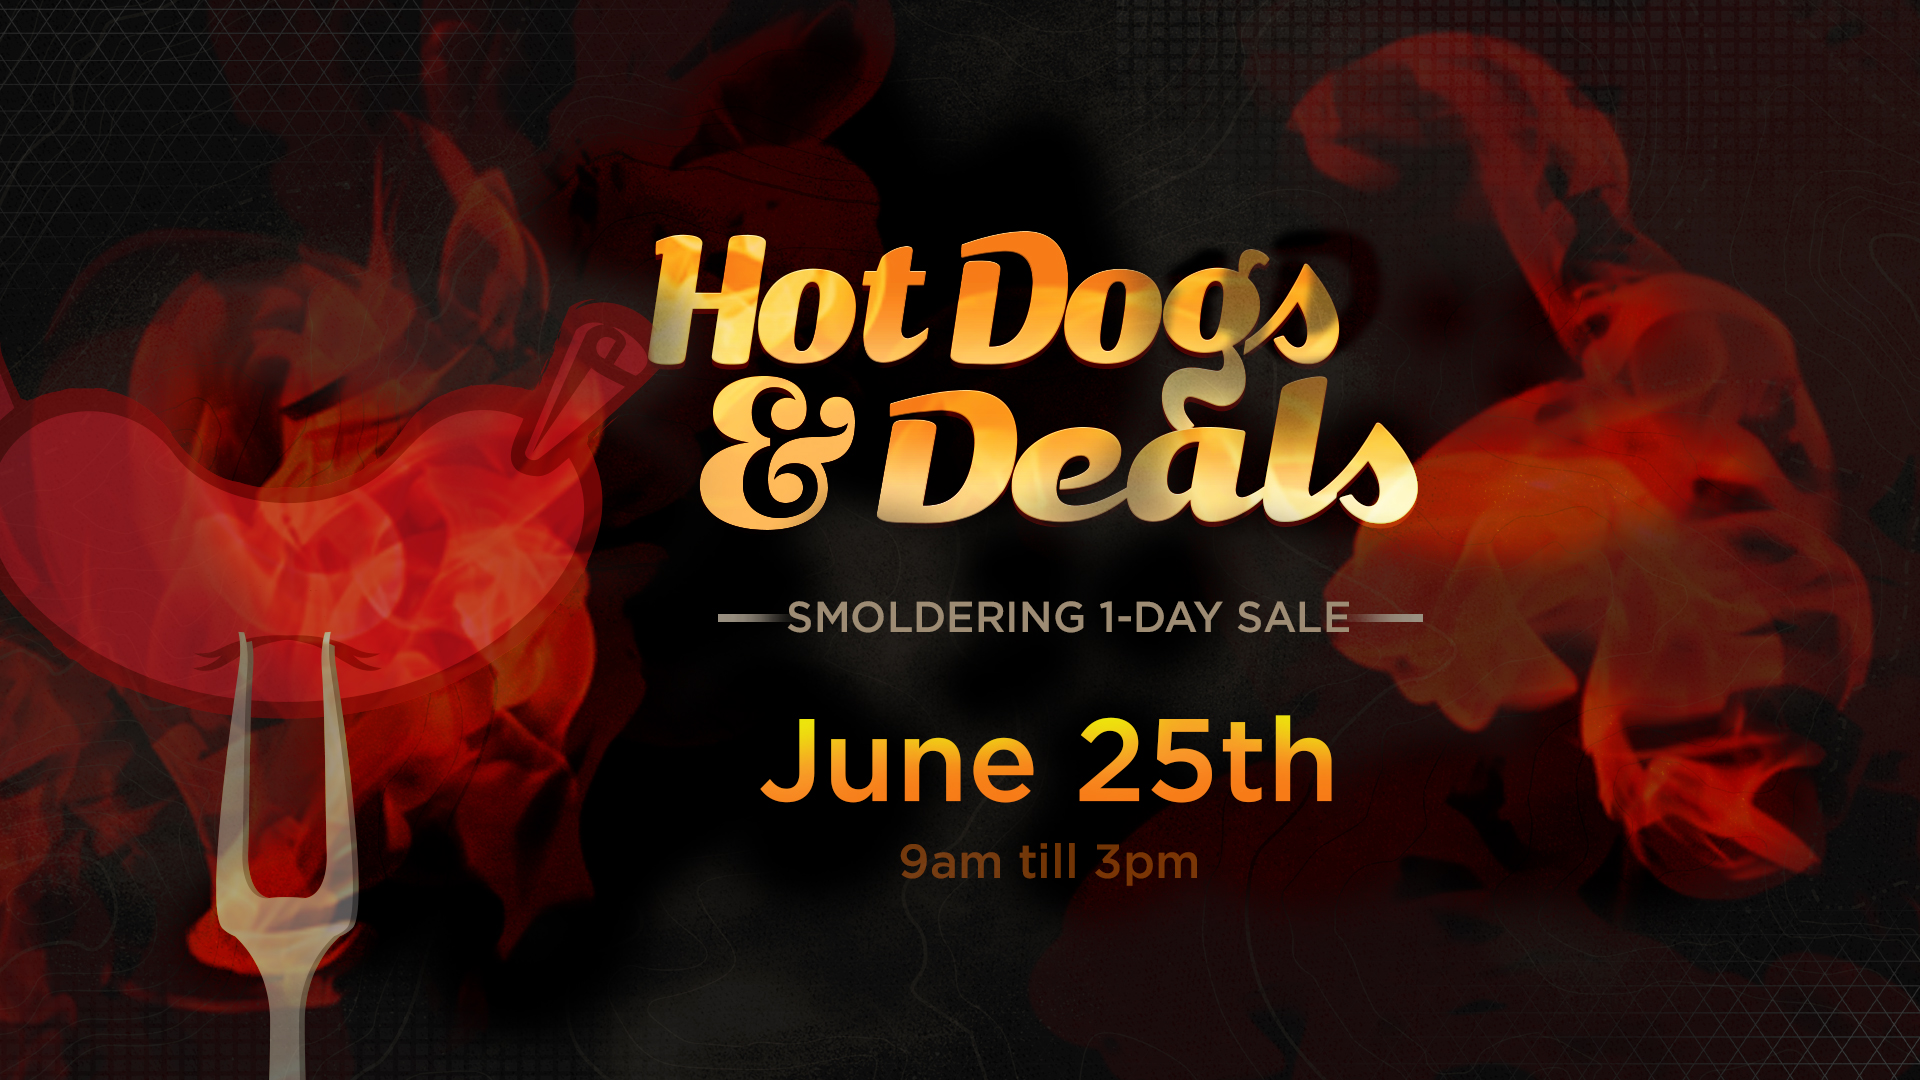 Hot Dogs and Deals - June 25th